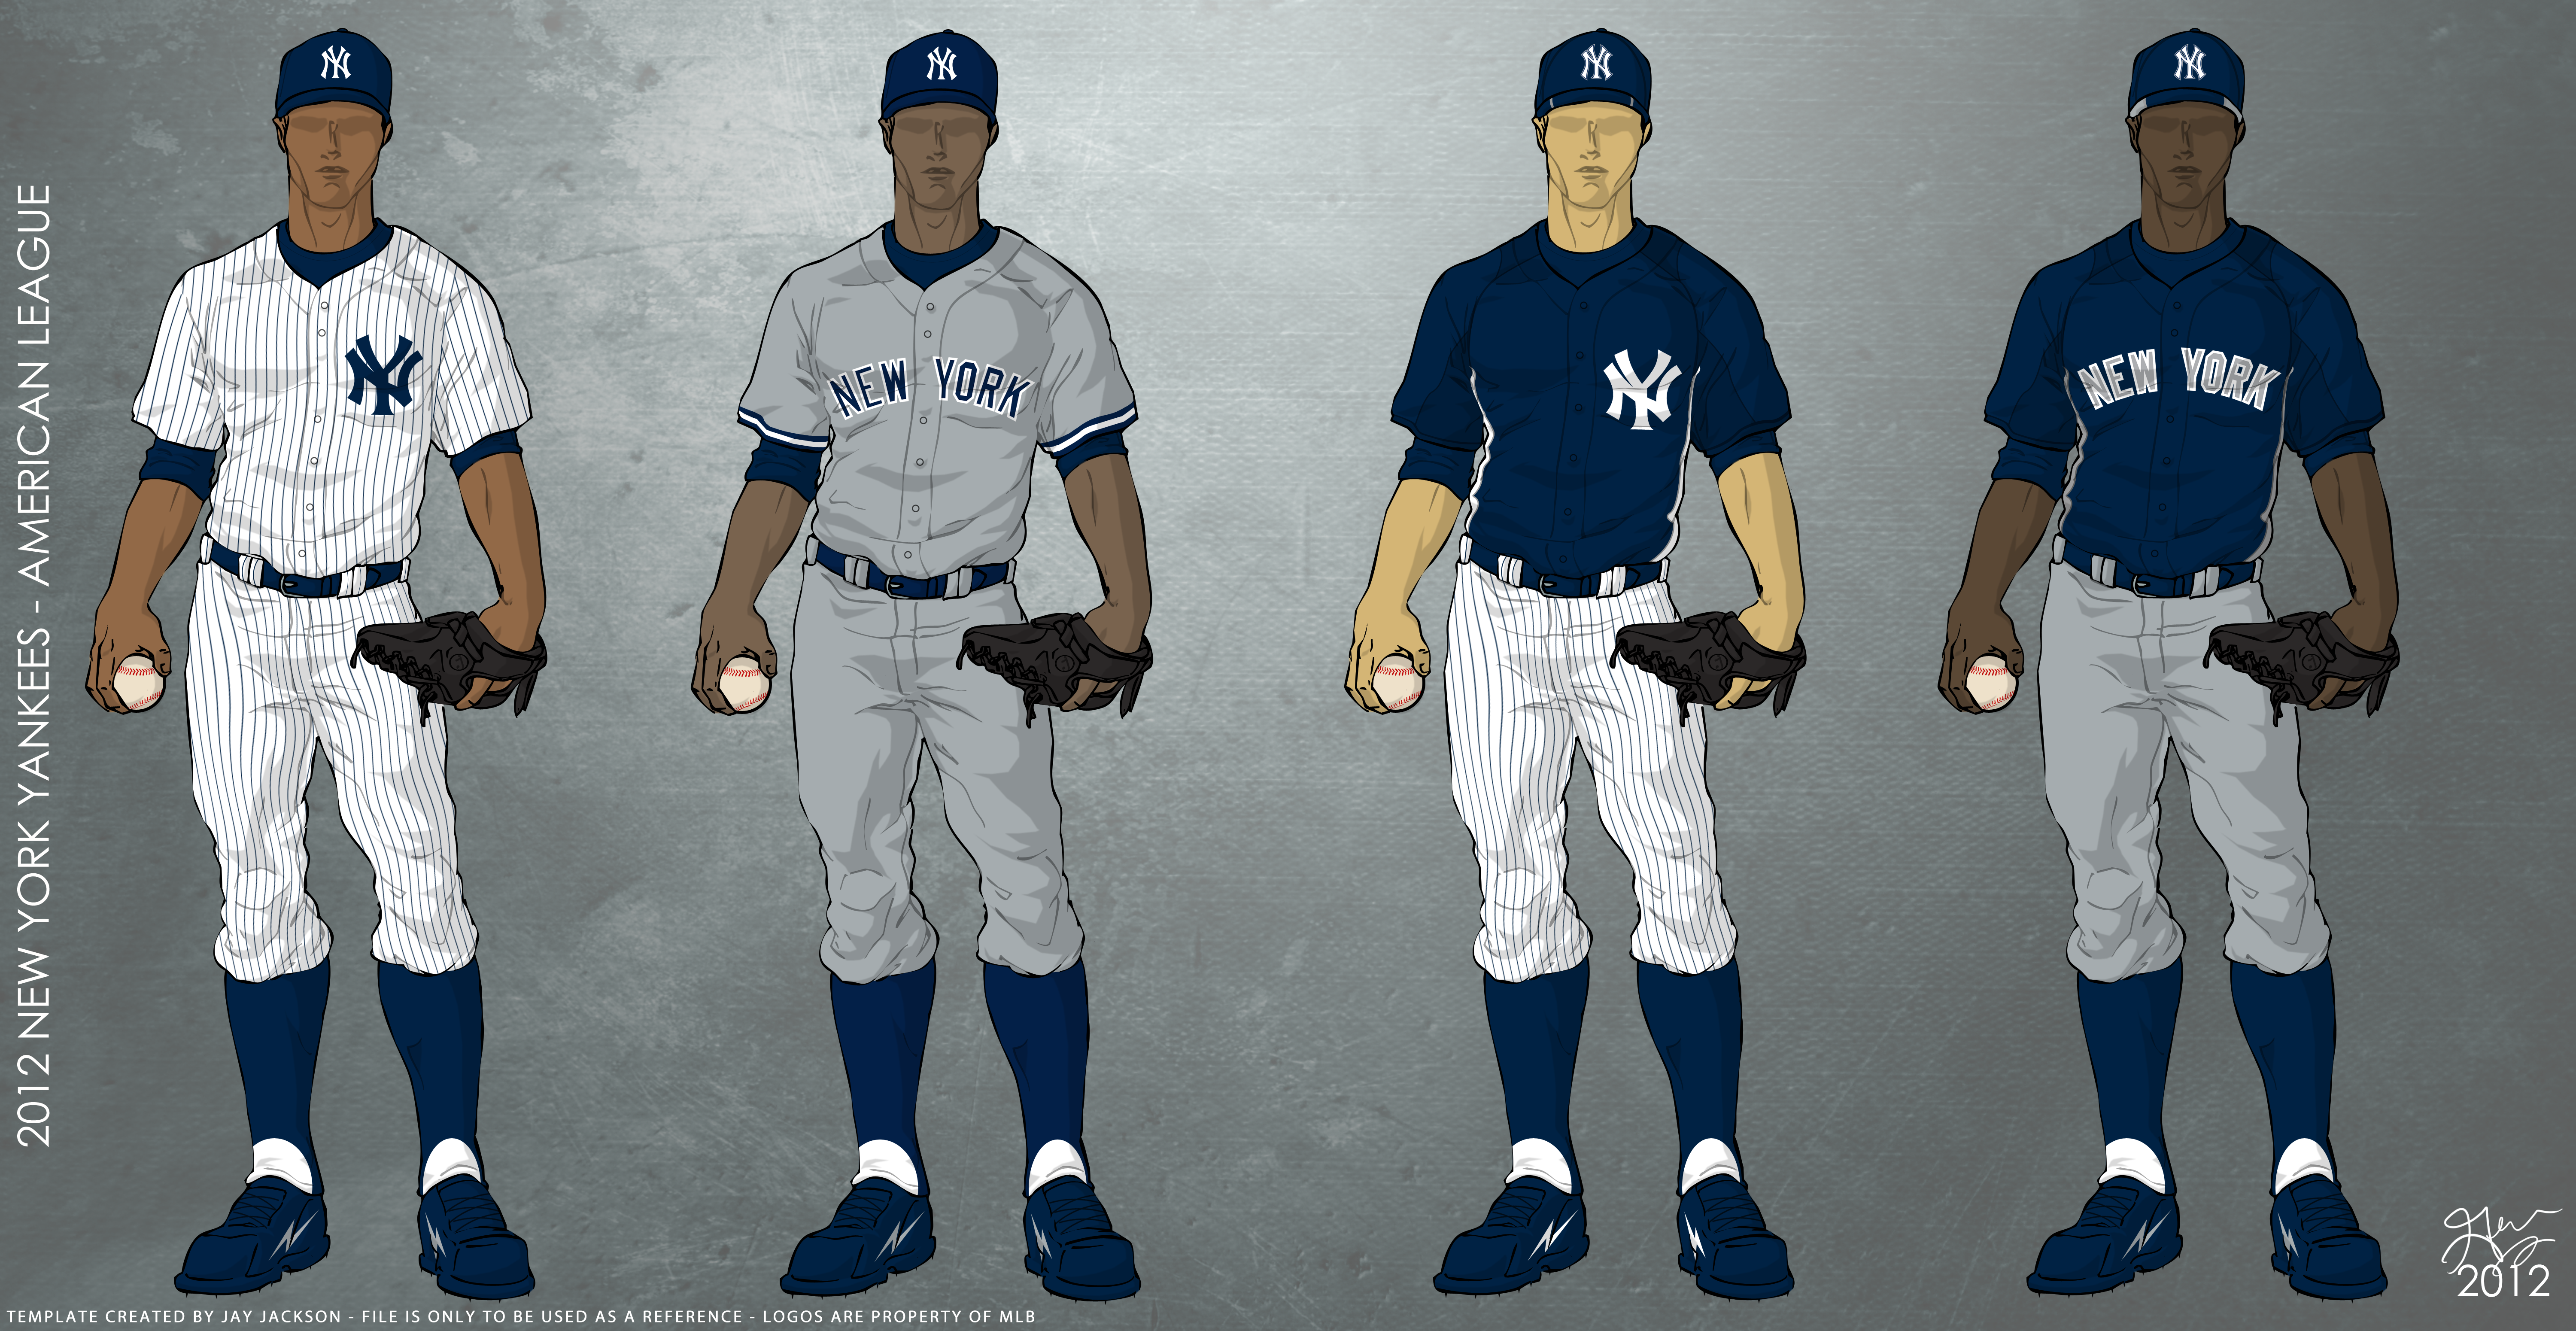 New York Yankees 2012 Uniforms Uniforms To Be Worn For